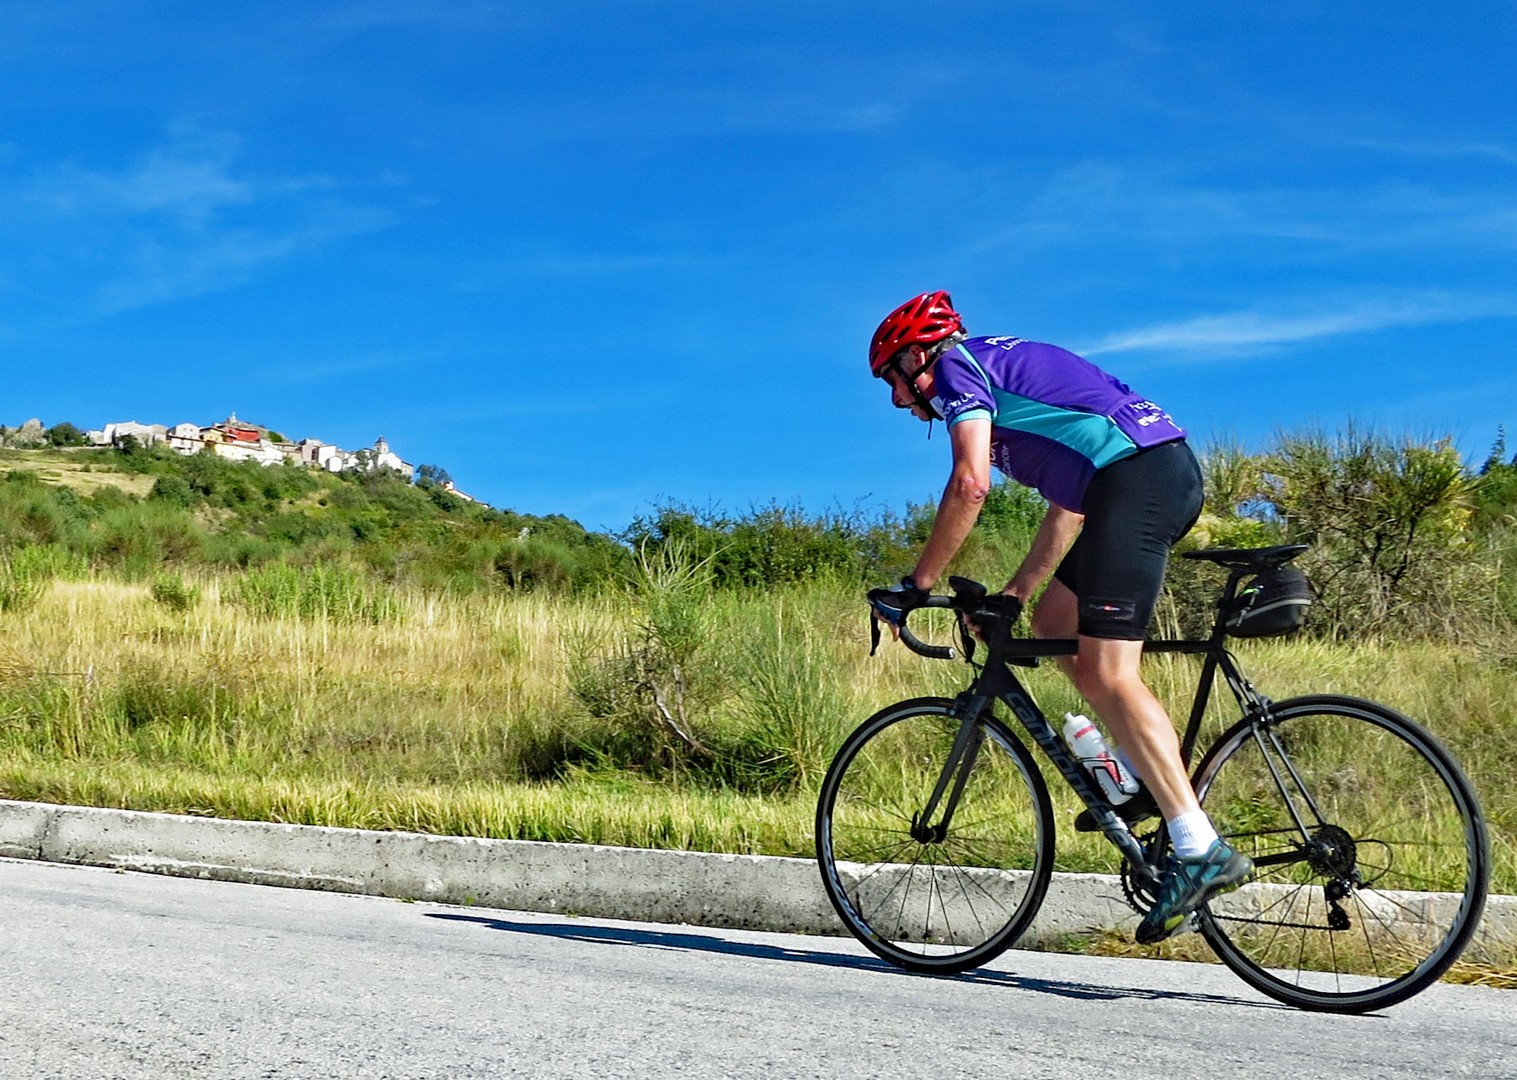 challenging-guided-road-cycling-holiday-italy.jpg - Italy - Grand Traverse - South to North (22 days) - Guided Road Cycling Holiday - Road Cycling